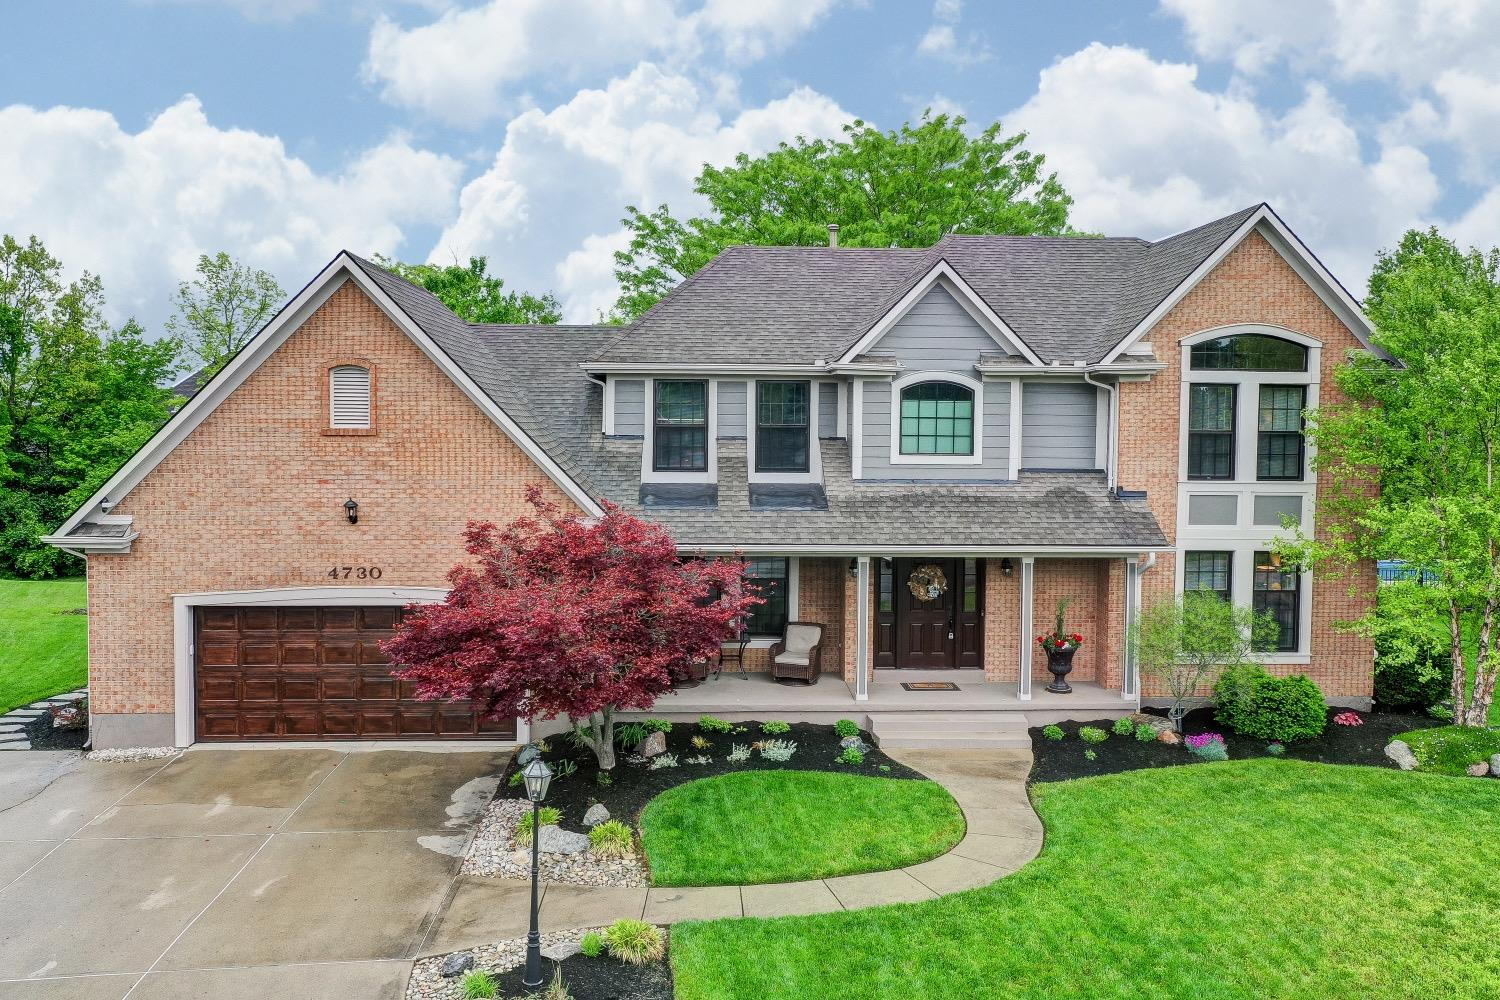 4730 Carriage Dr Mason OH